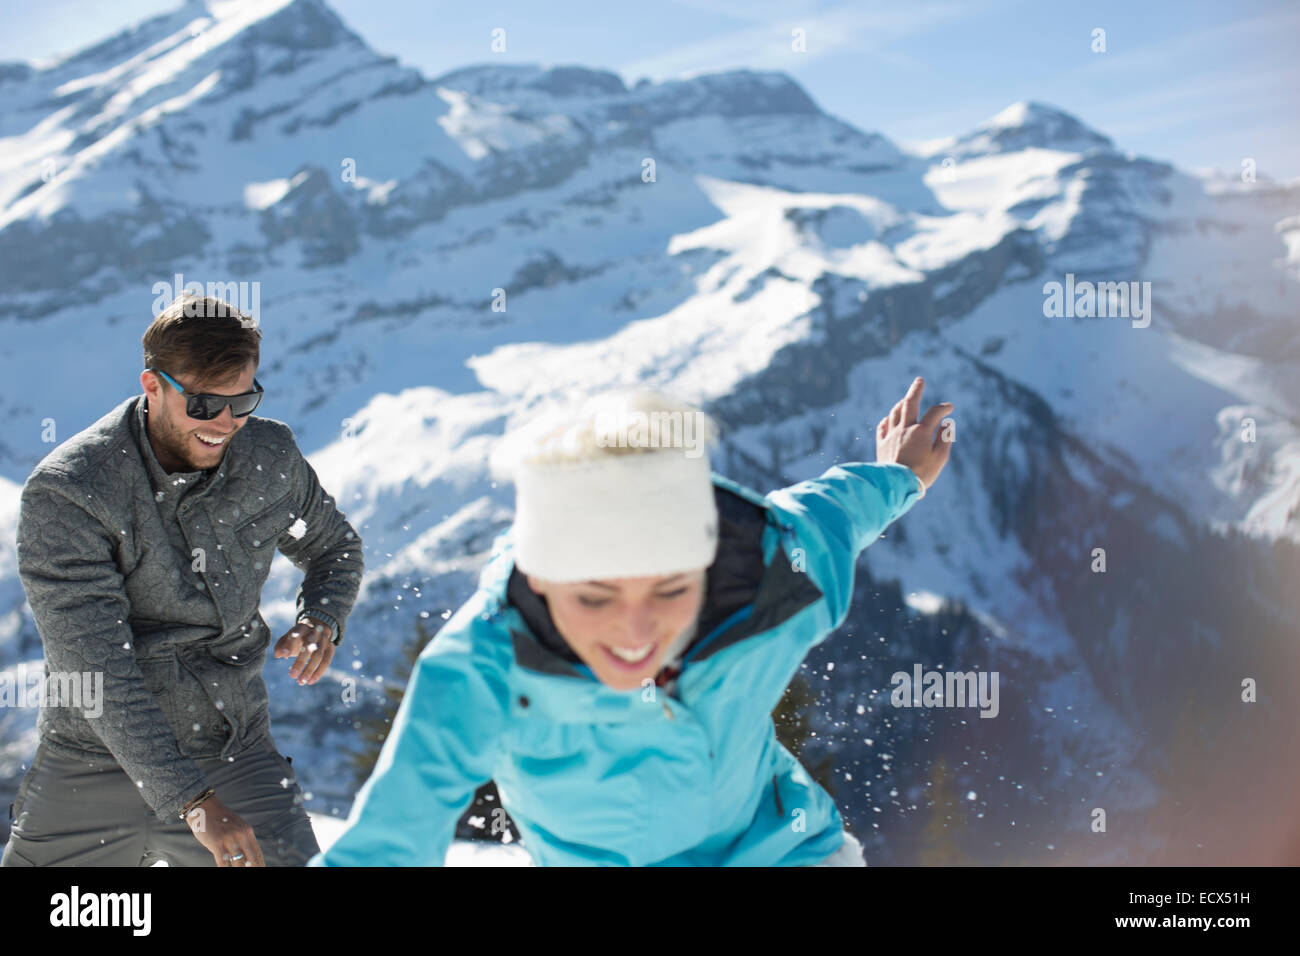 Couple playing in snow - Stock Image